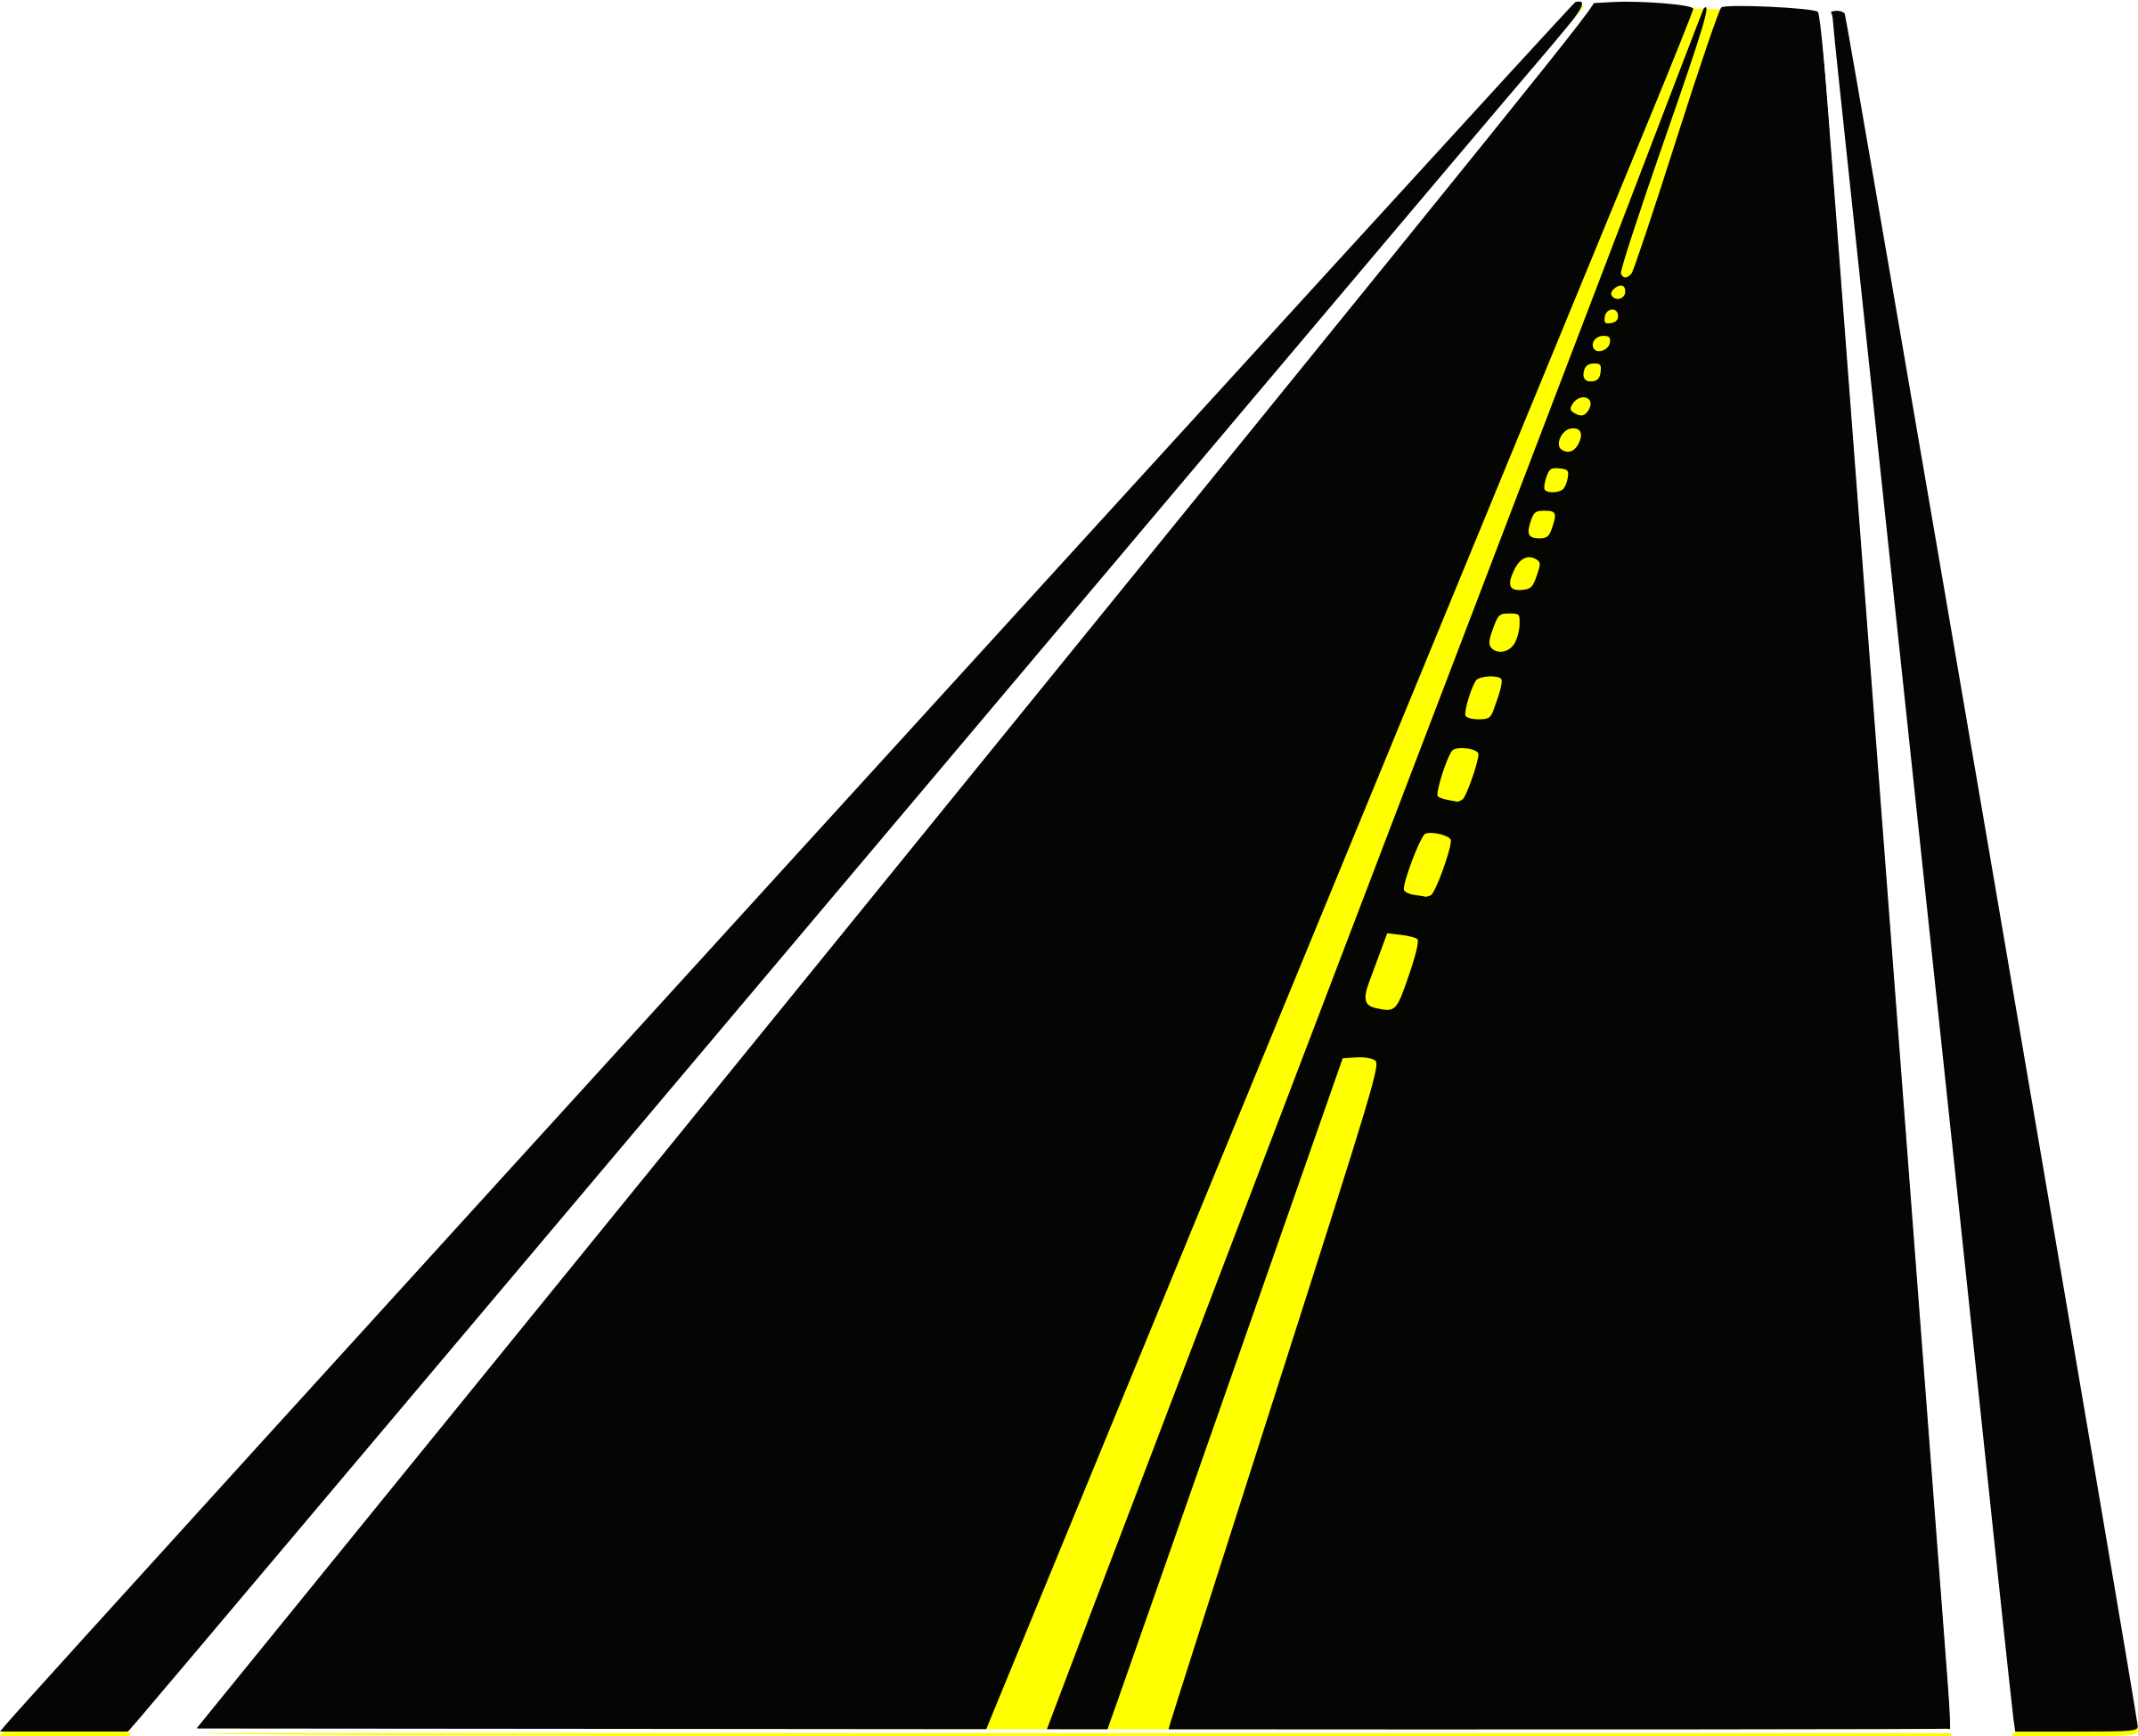 clipart stock Road ahead free on. Highway clipart